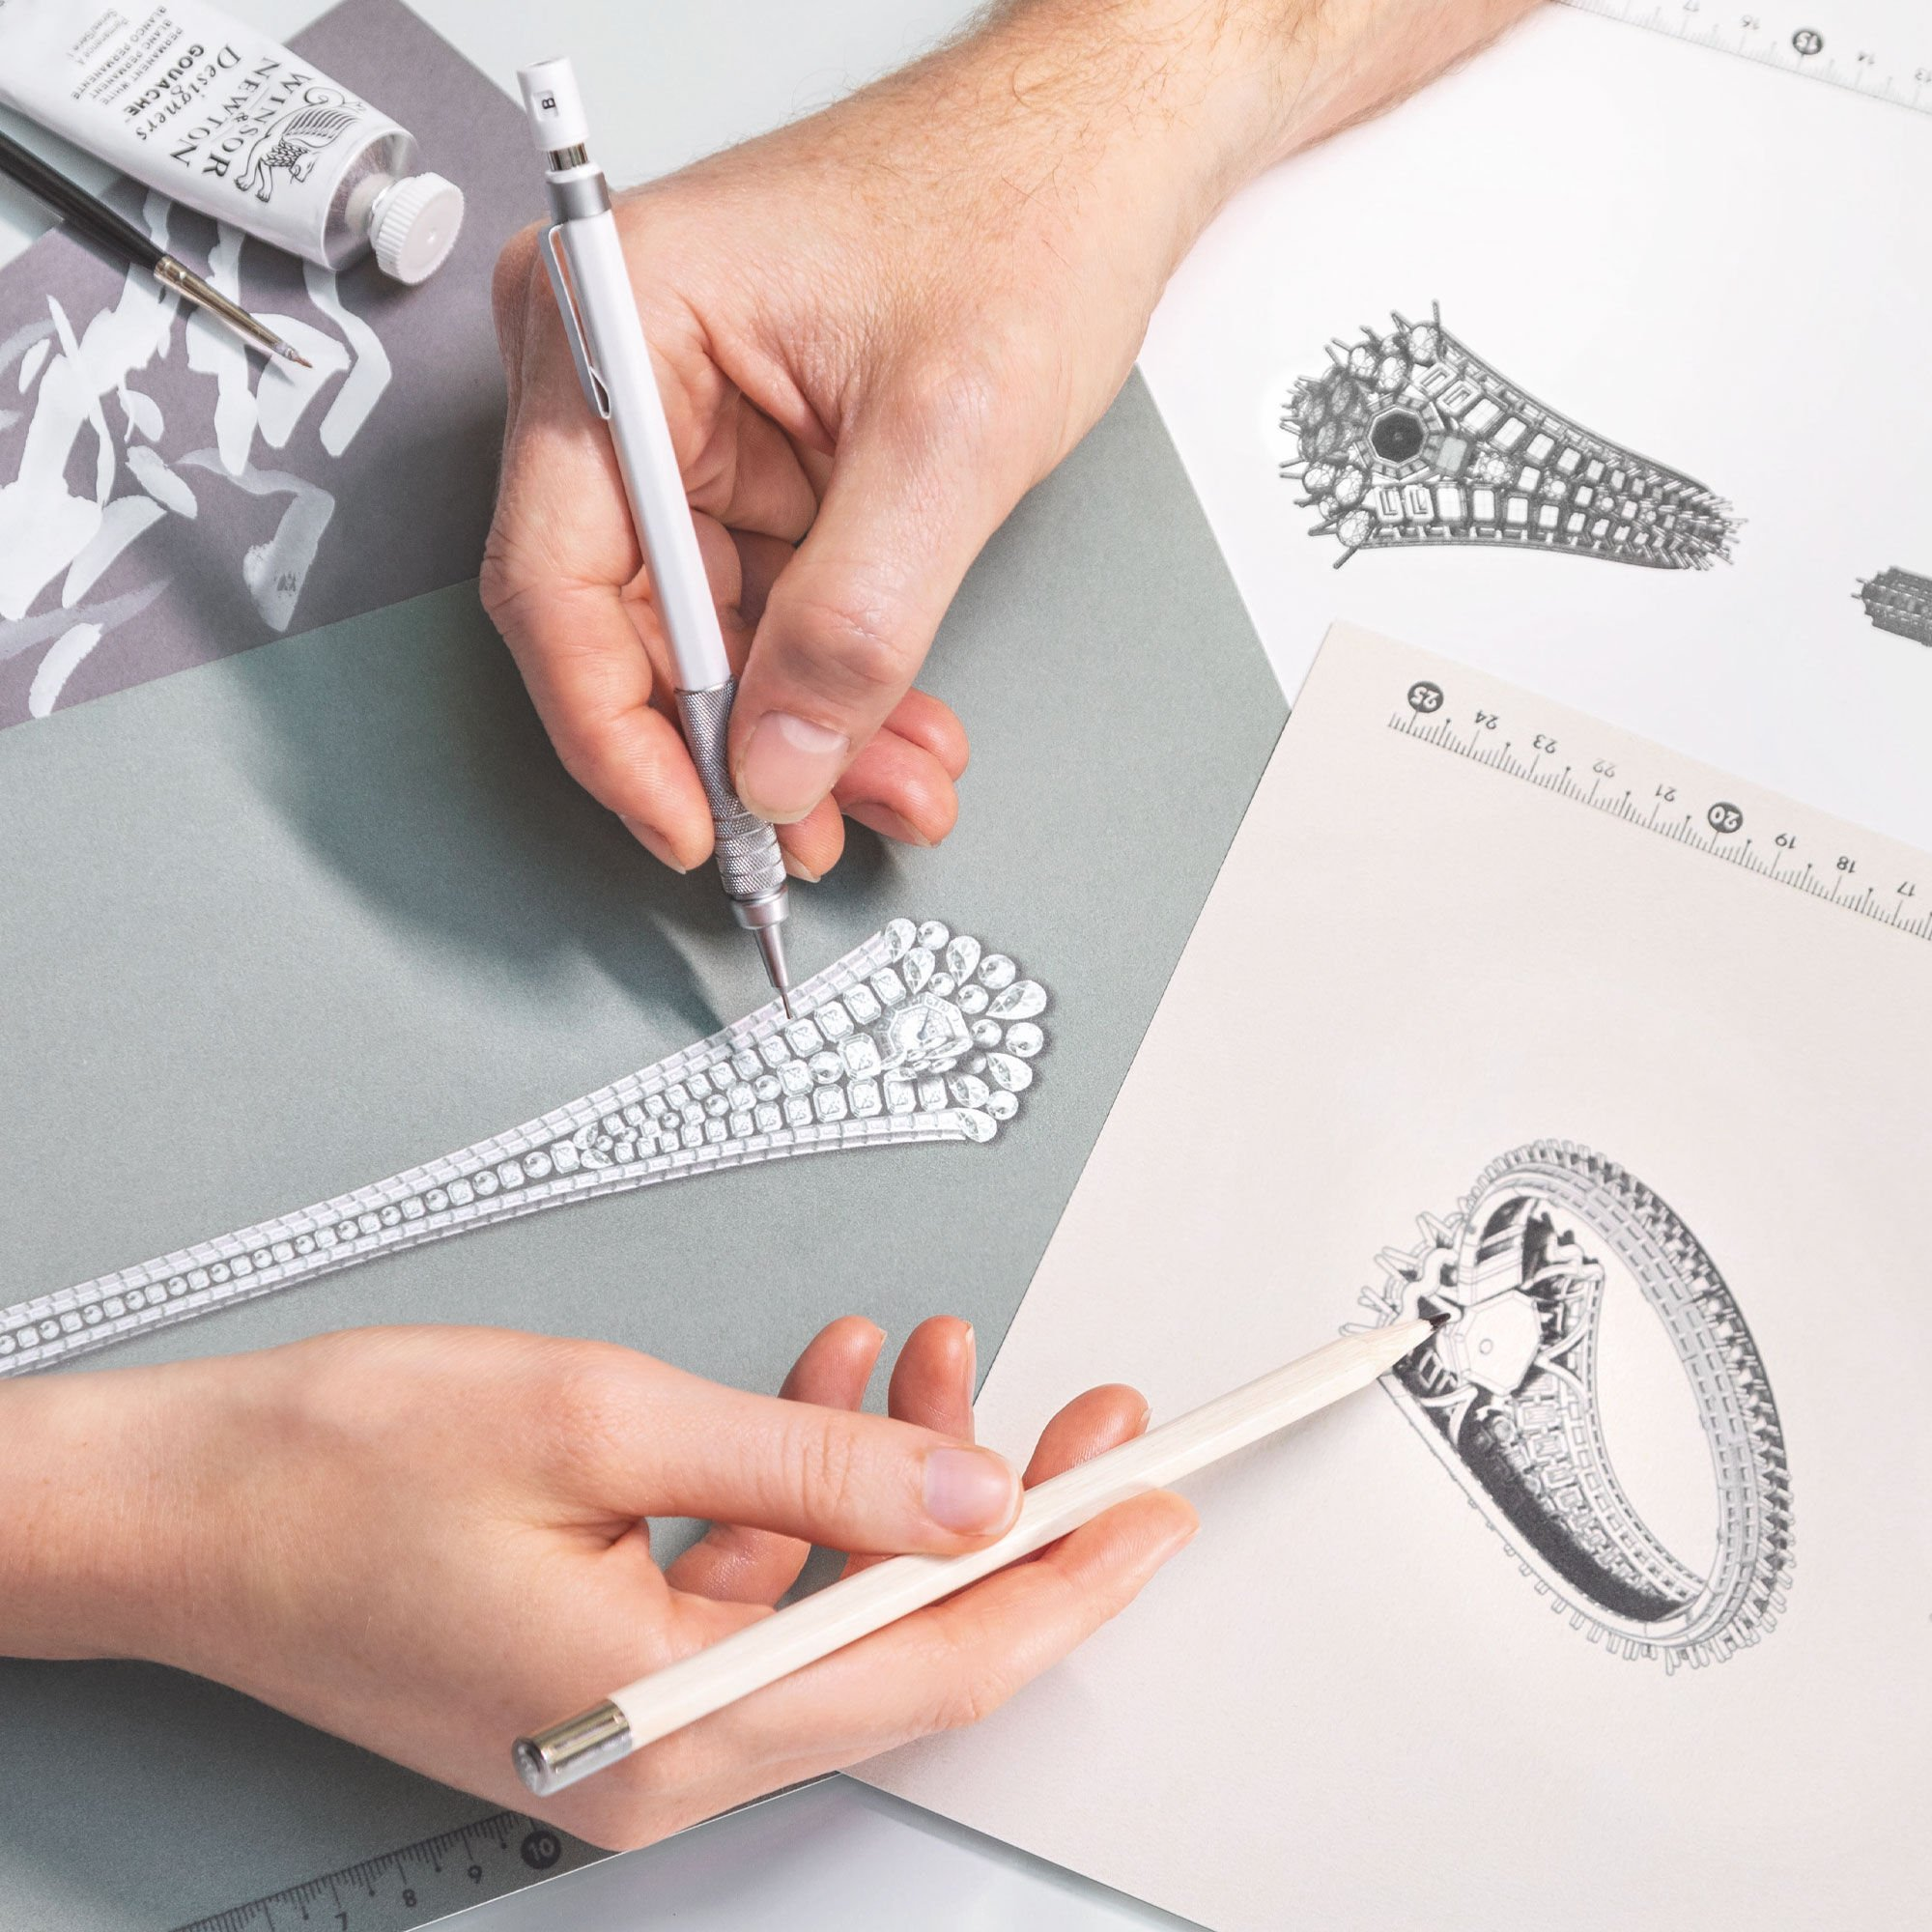 Graff designer sketching the Oval Diamond Secret Watch from the Graff unique timepieces collection